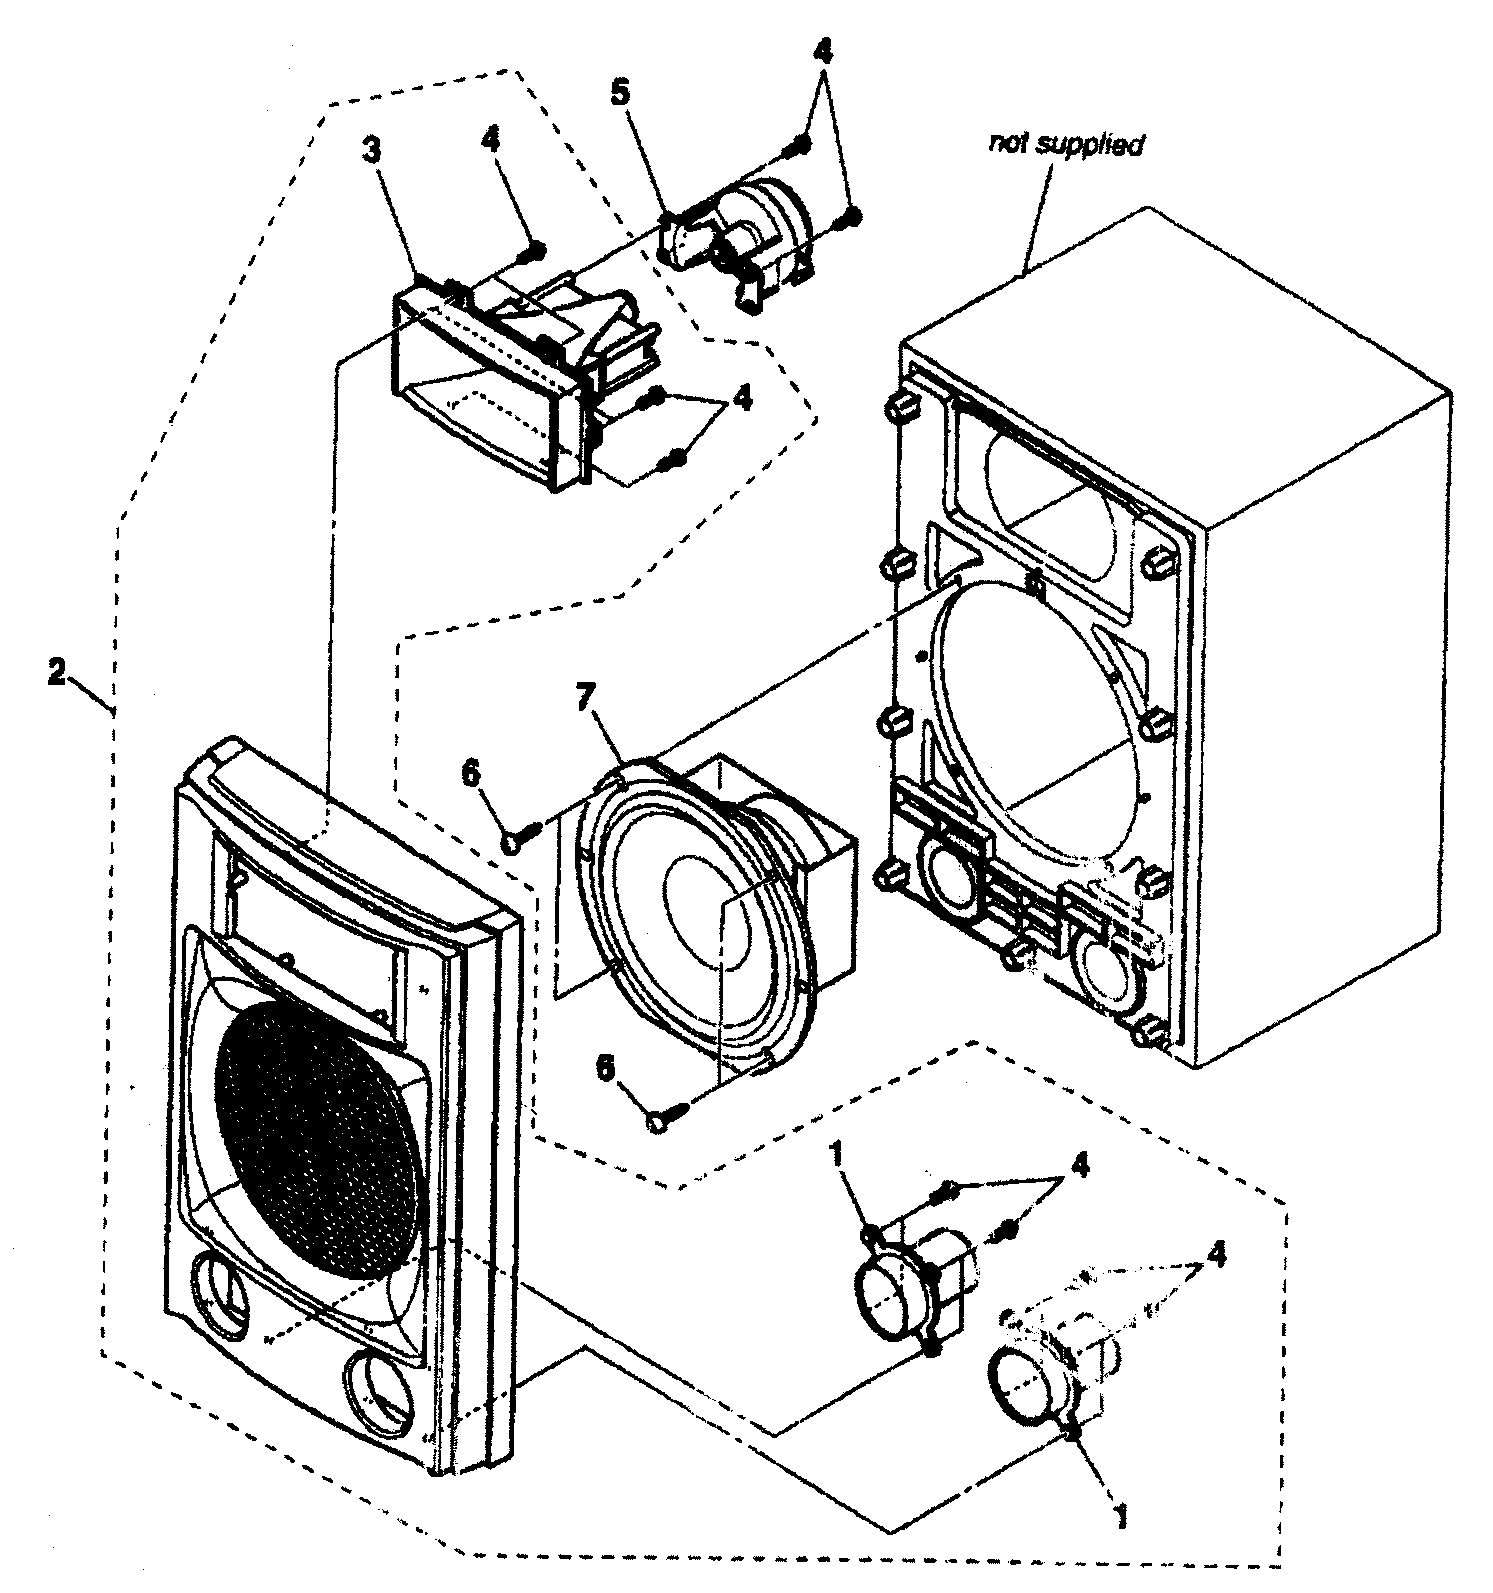 parts of a speaker diagram simplicity 6216 wiring 301 moved permanently